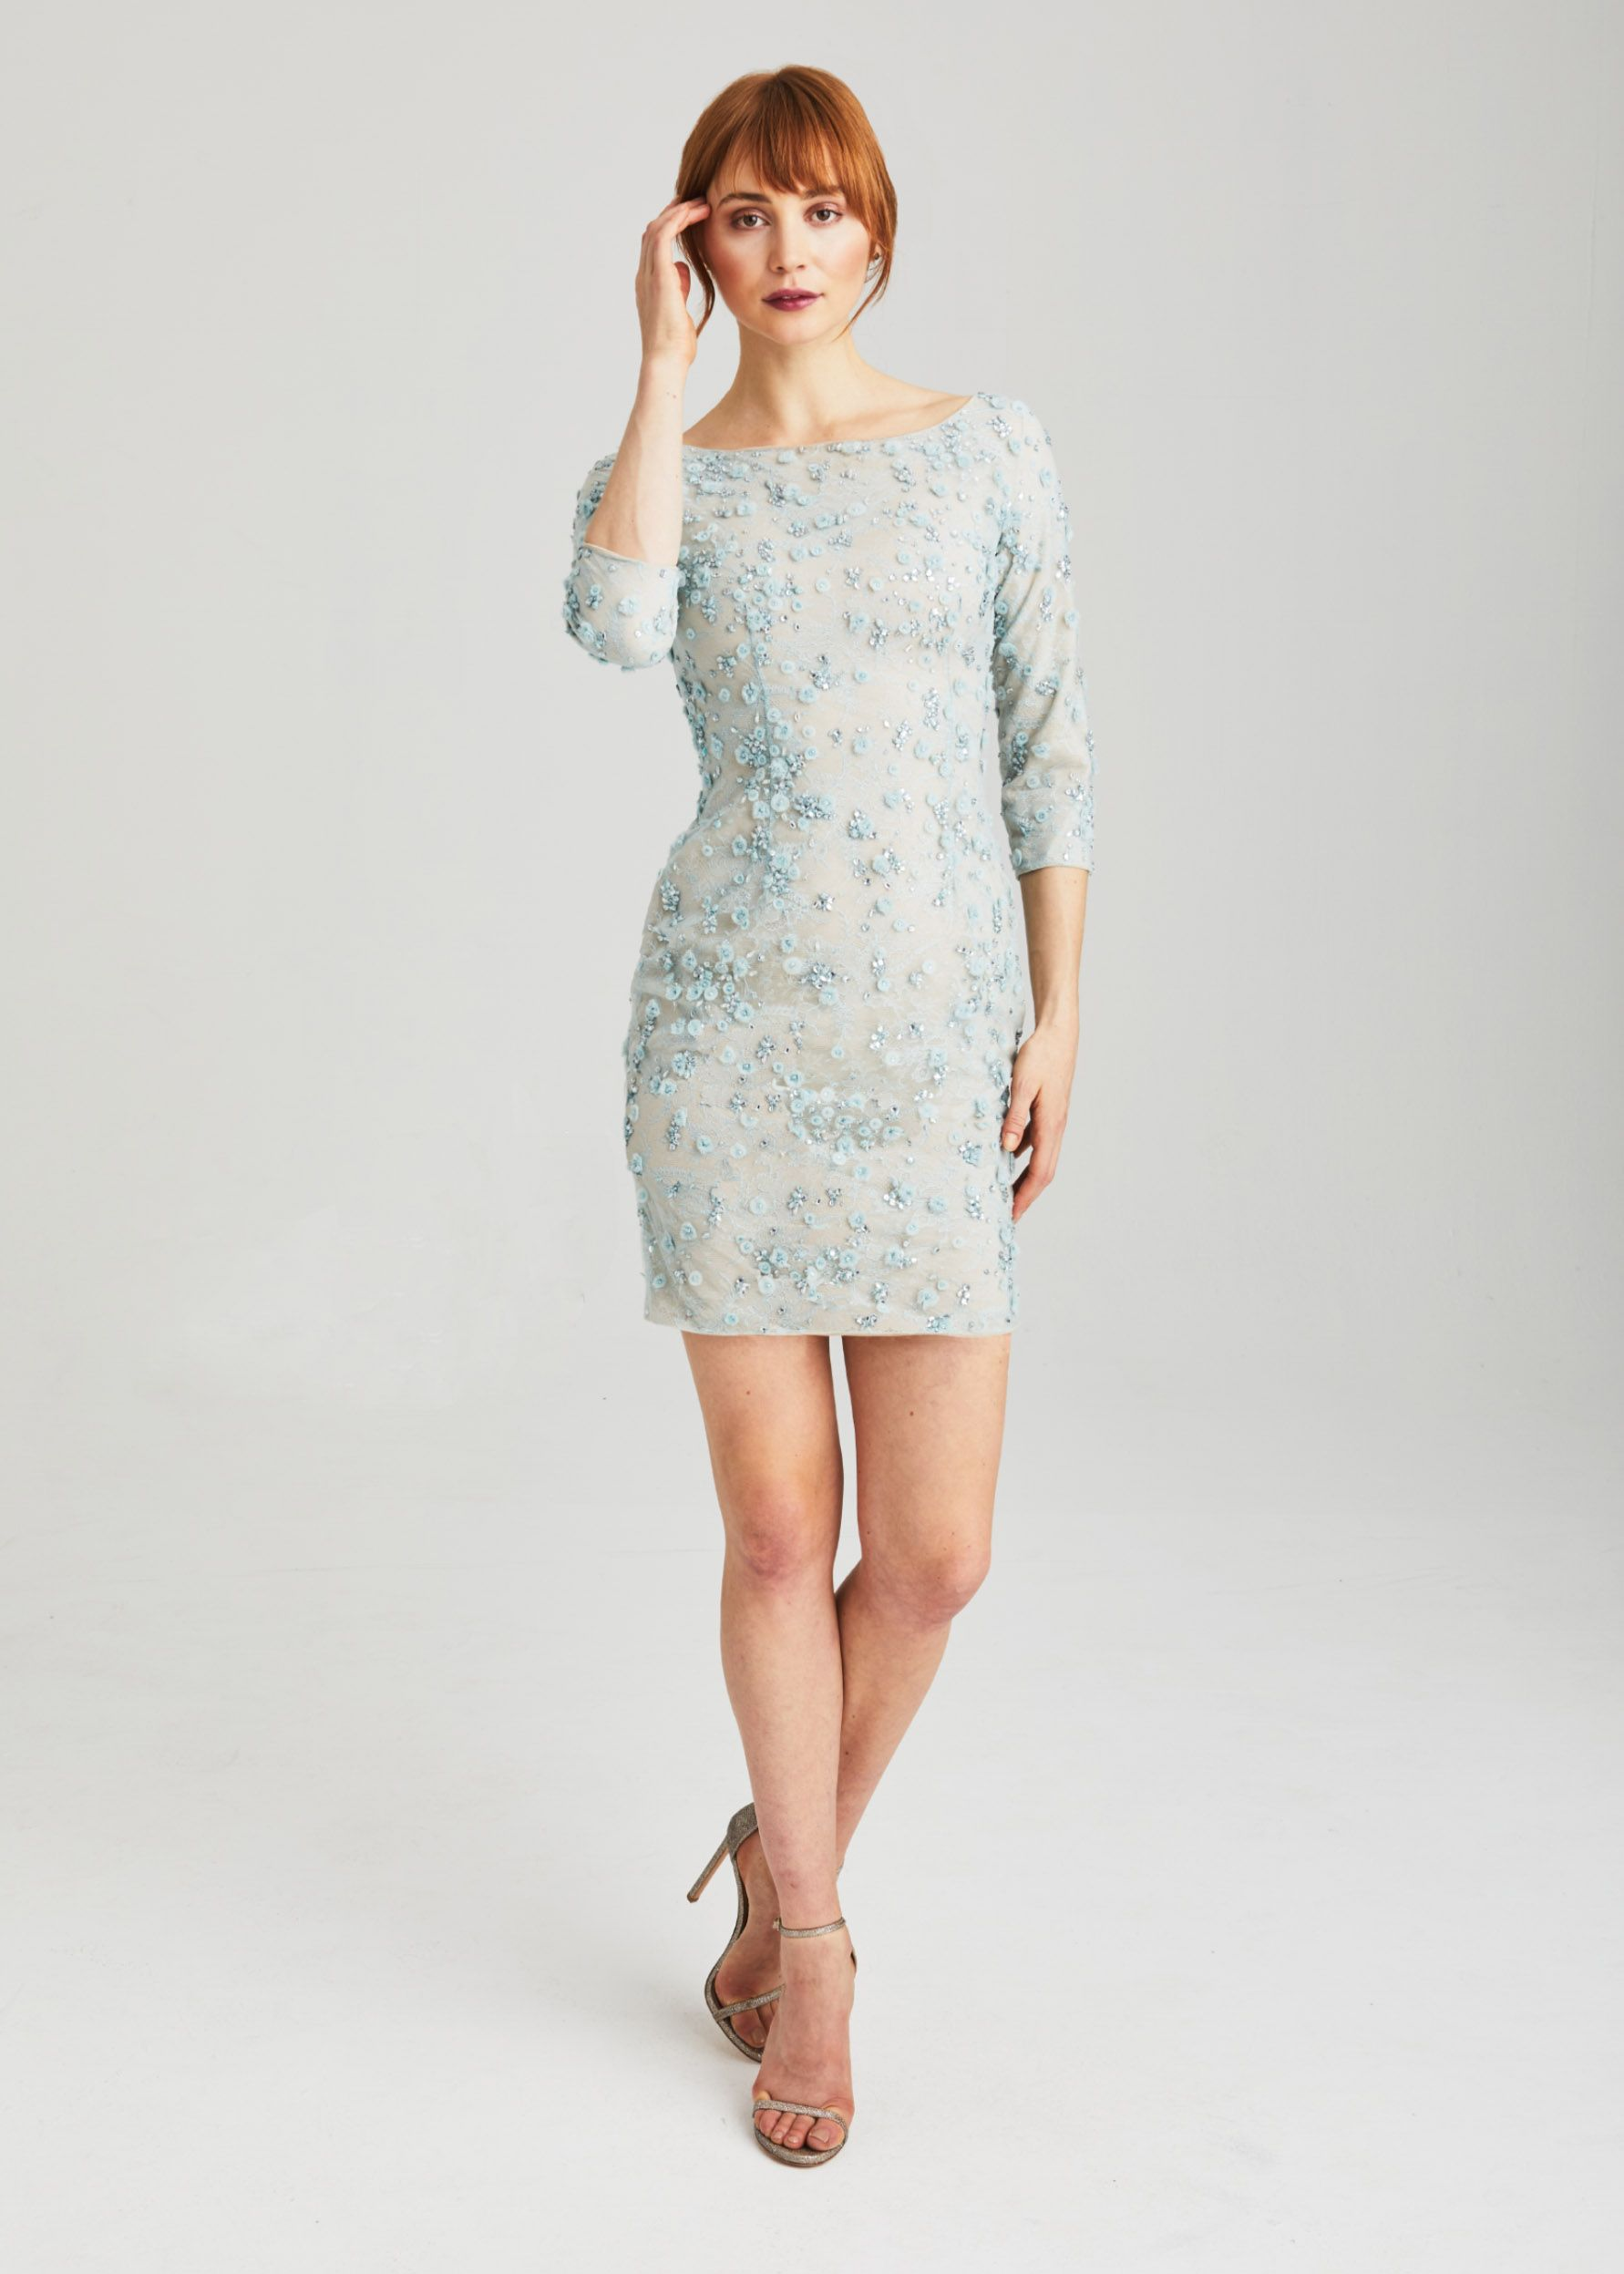 Anne barge black label long sleeve cocktail dress with jewel